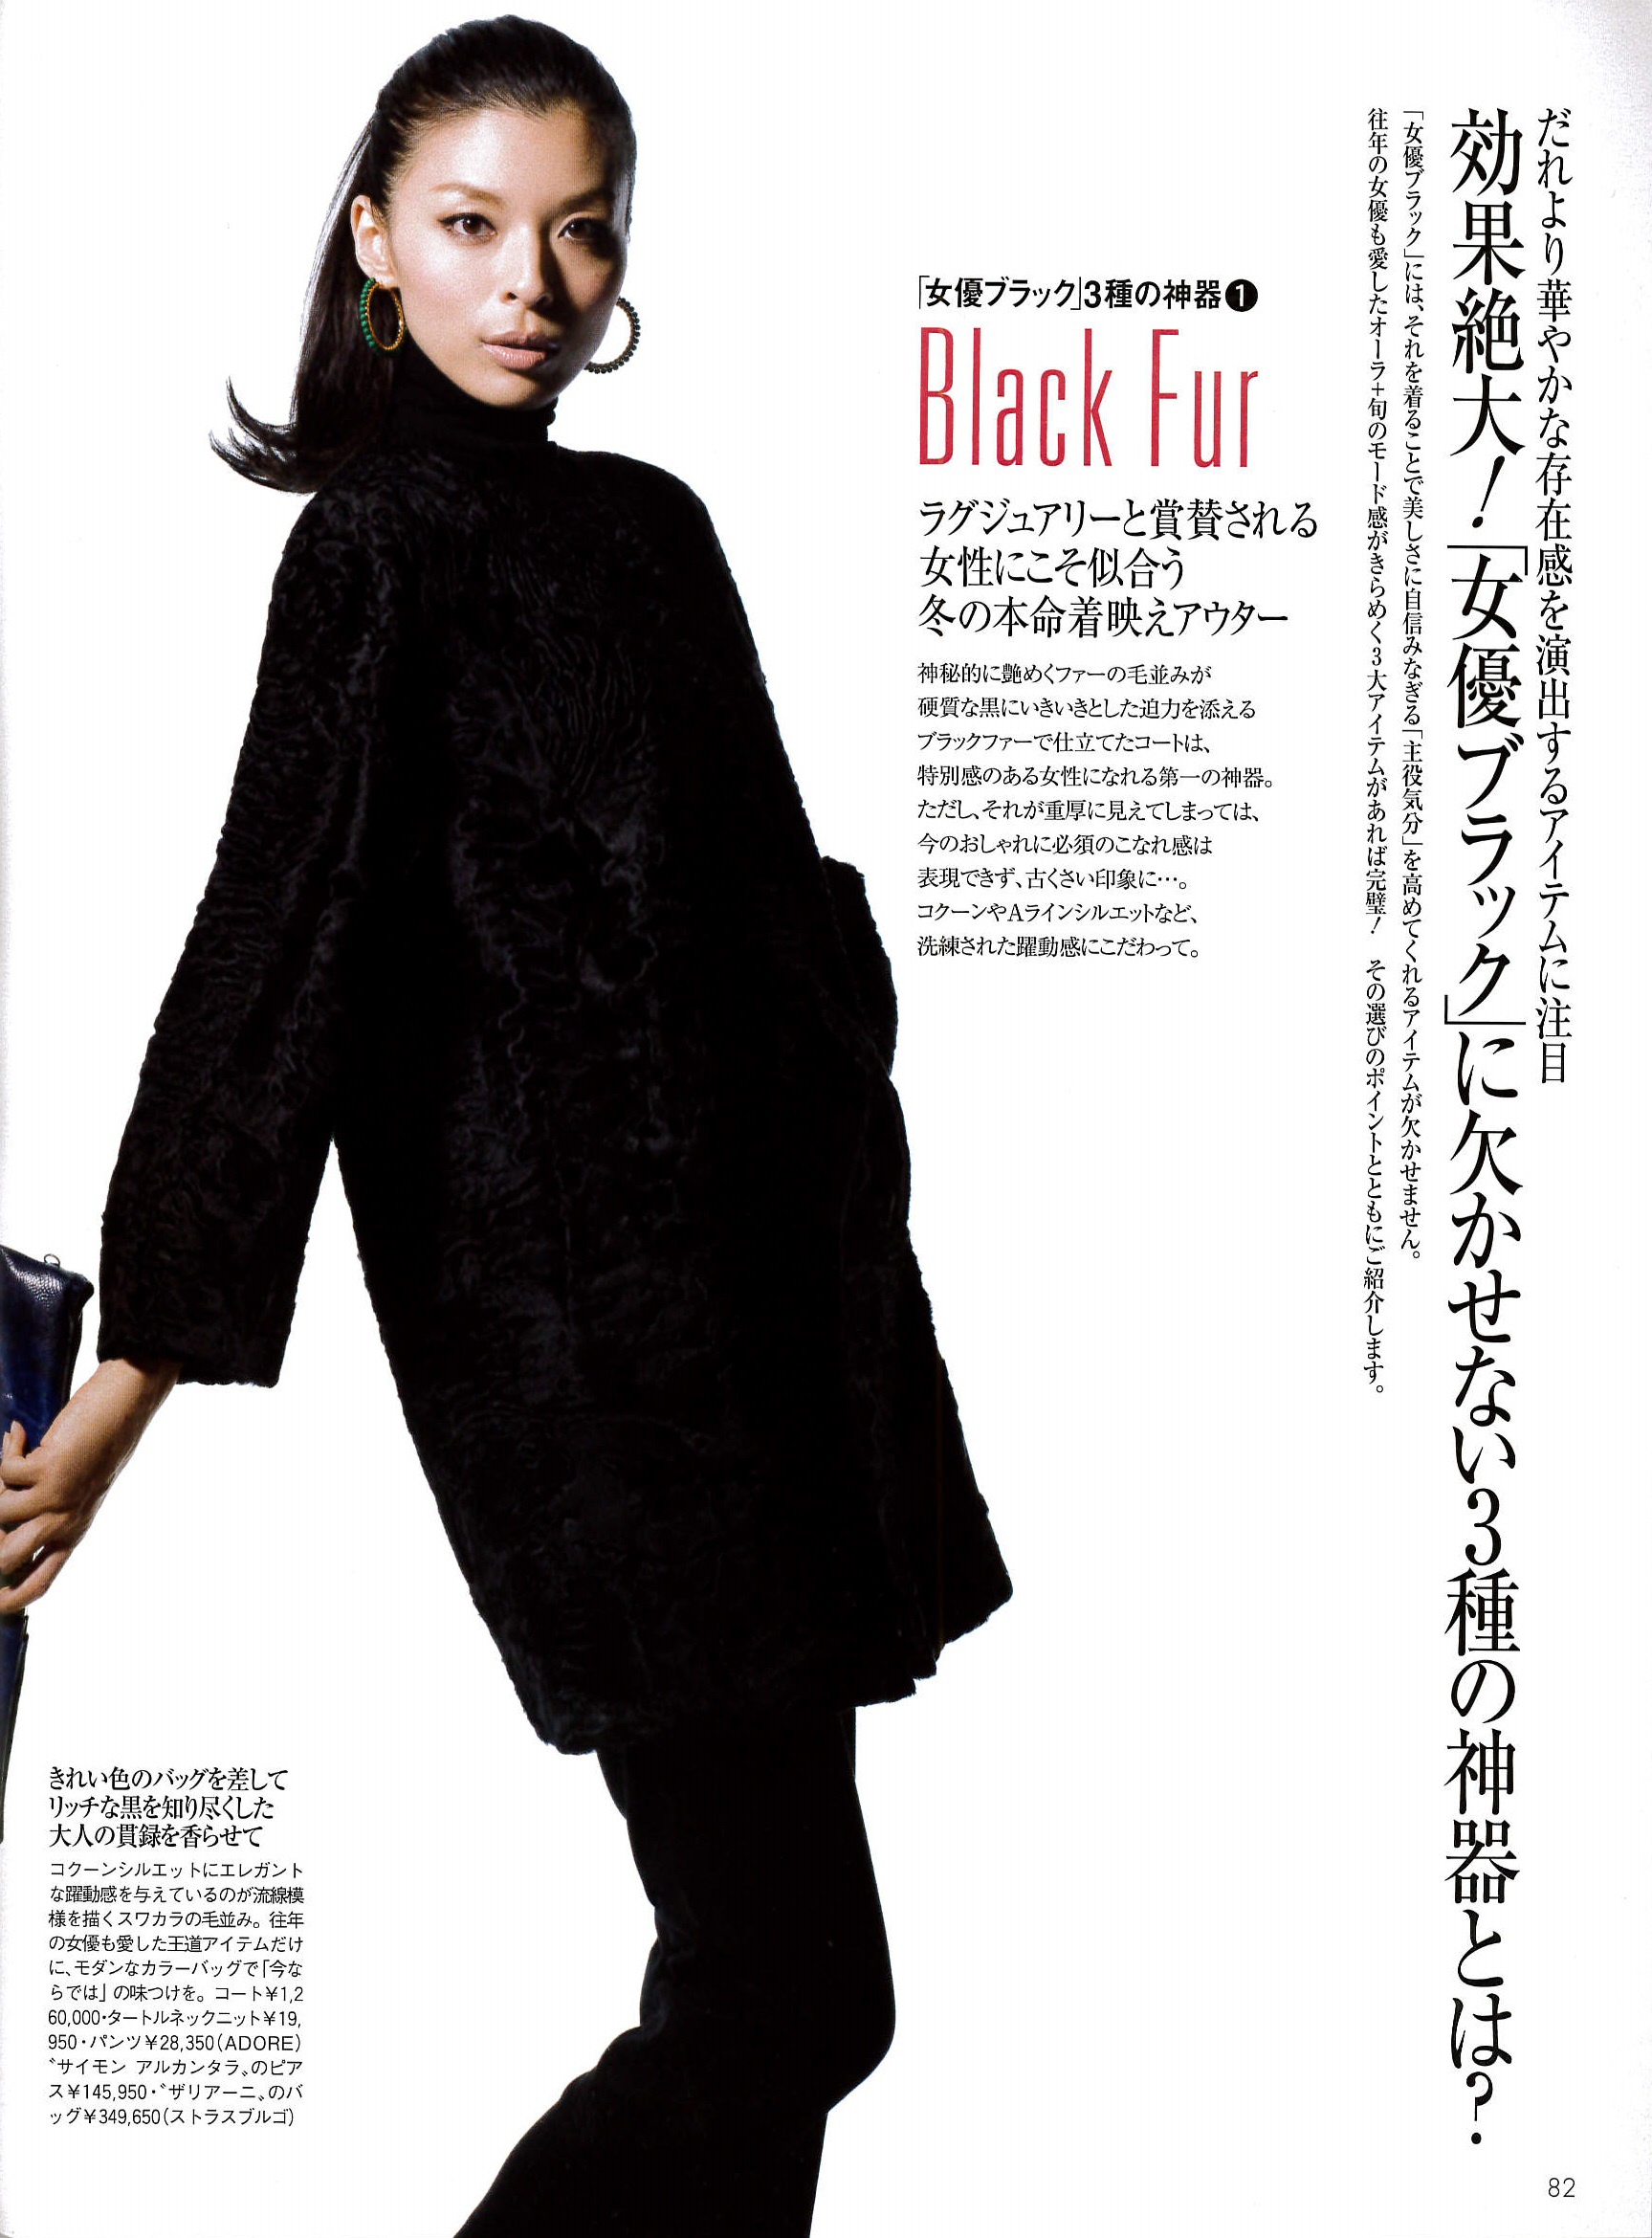 Precious Magazine Japan November 2013 issue 45mm rose gold hoops with malachite